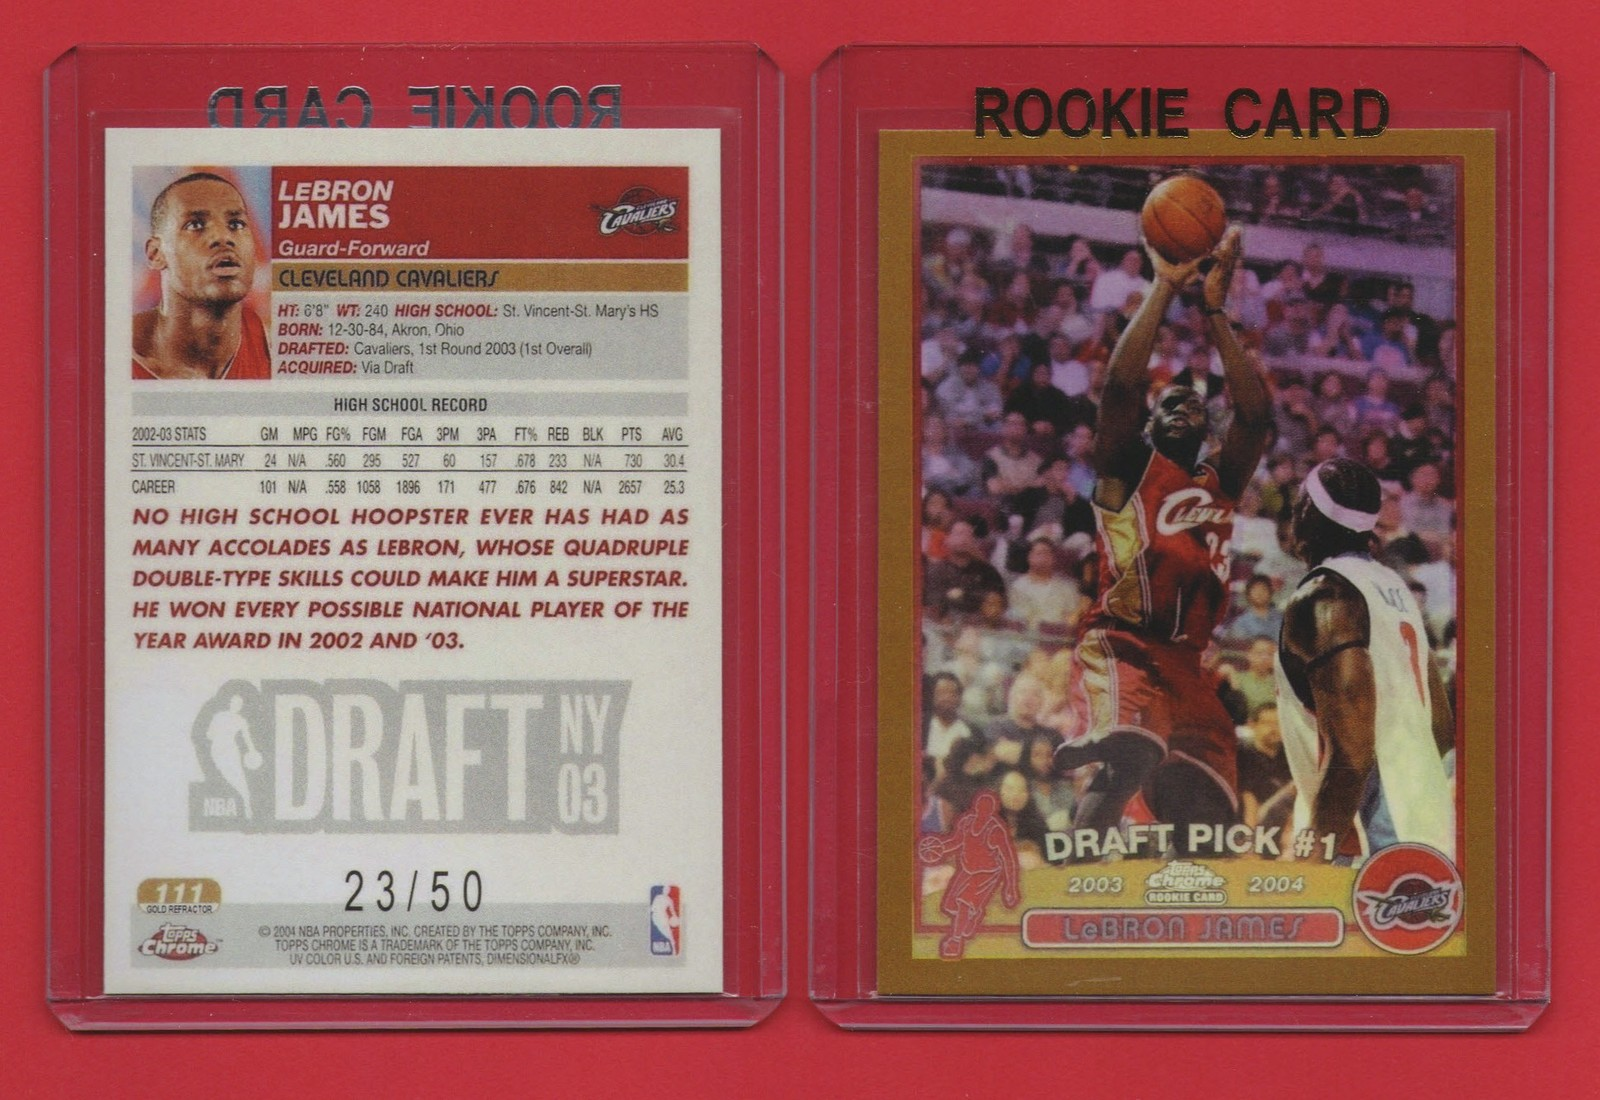 Primary image for 2003-04 Topps Chrome #111 LeBron James GOLD #23/50 ROOKIE REPRINT card